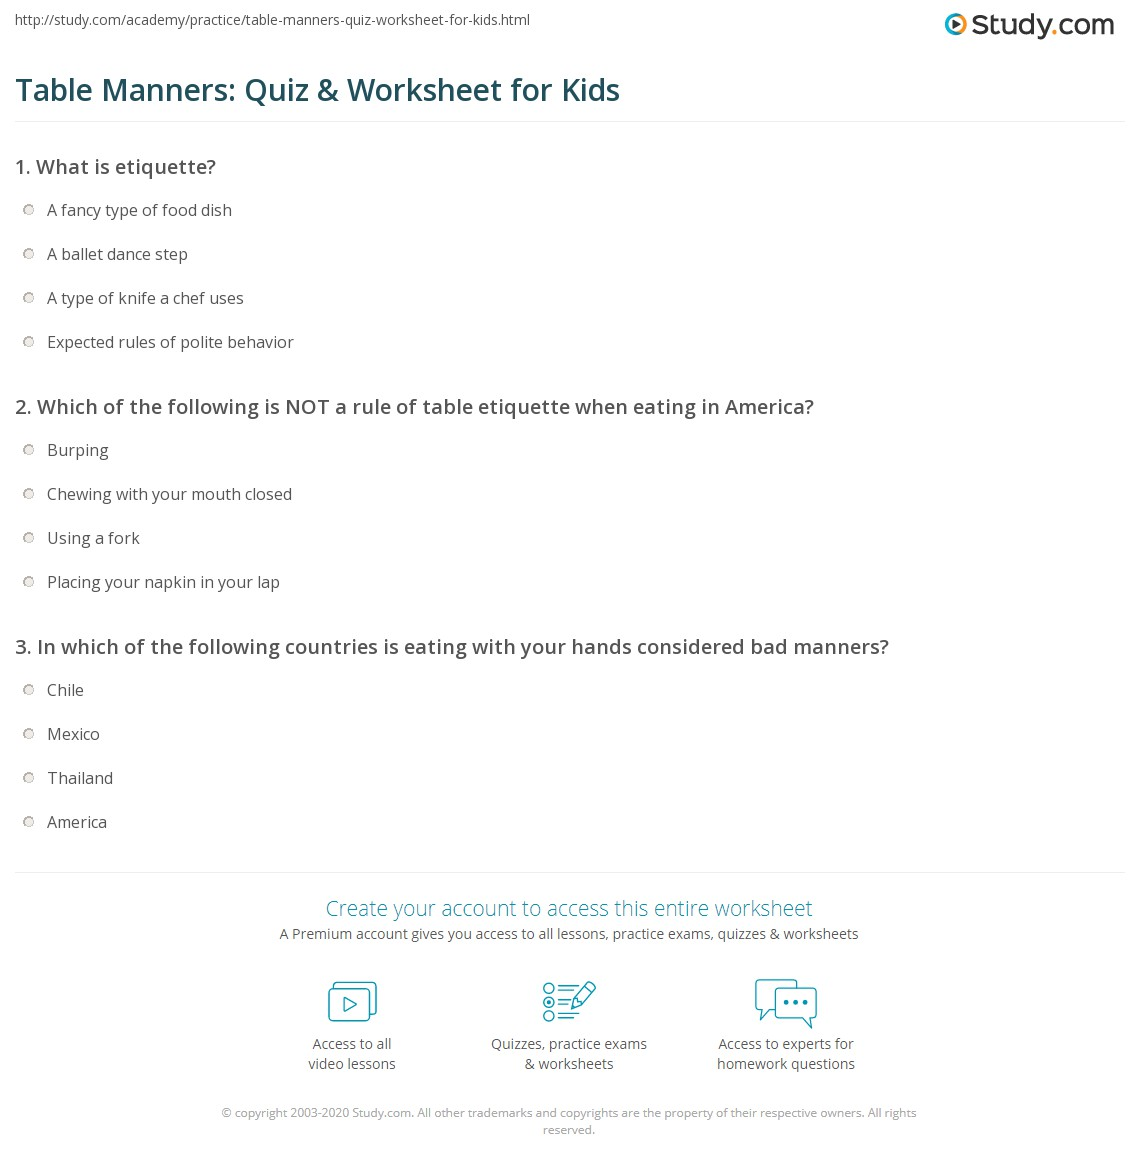 Table Manners Quiz Worksheet for Kids – Manners Worksheet